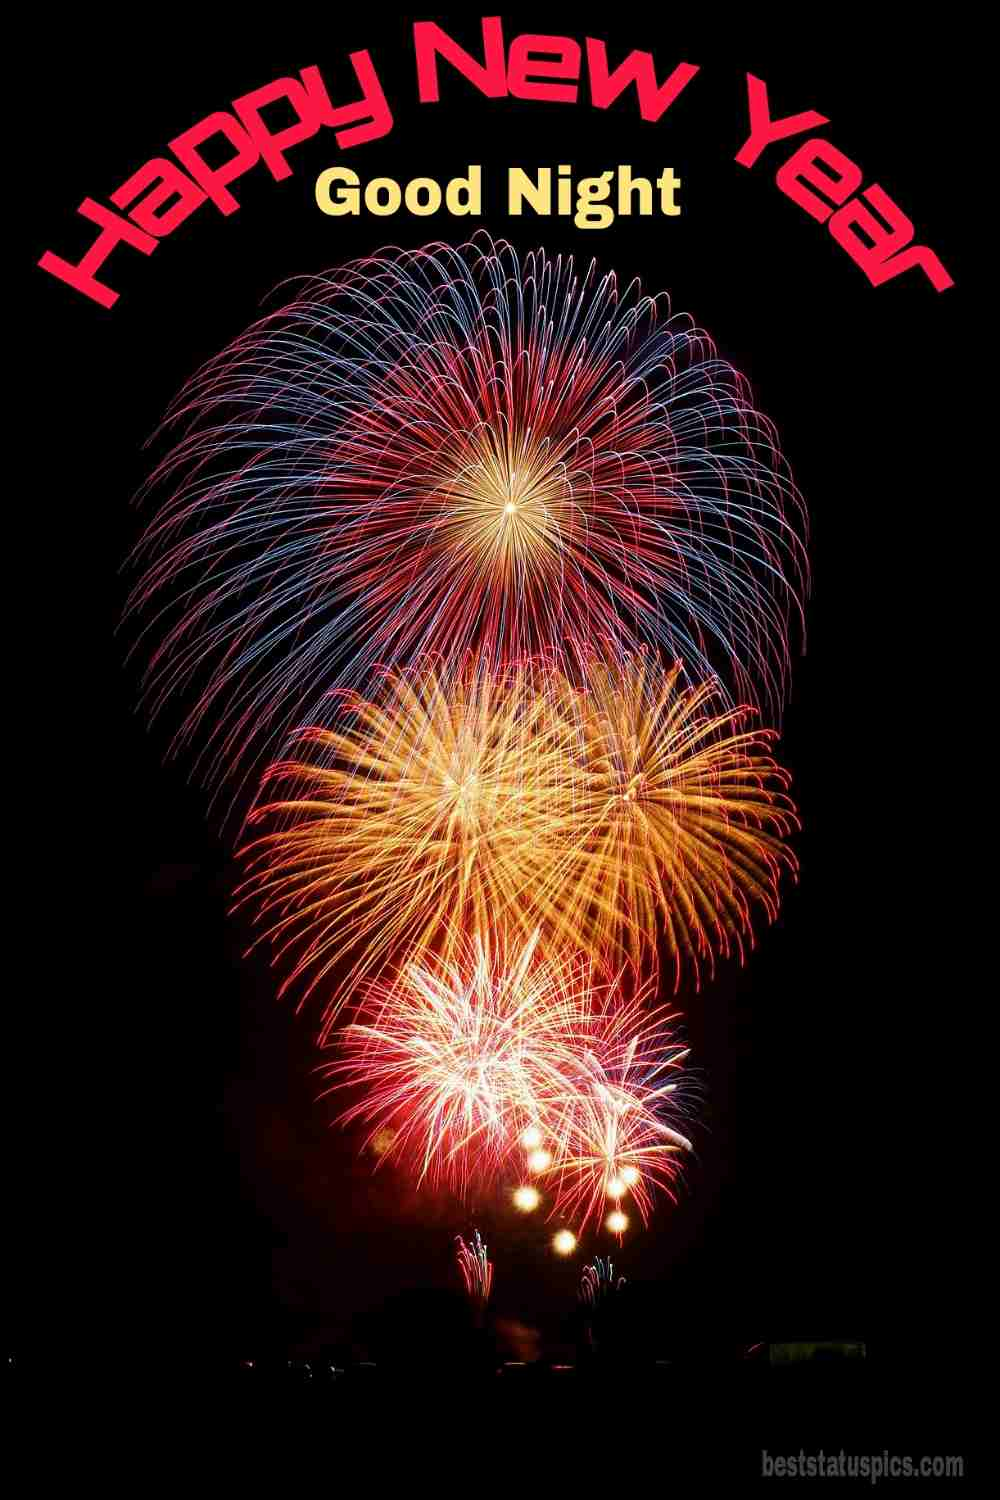 Happy new year 2022 and Good night HD photo with firework for Whatsapp status